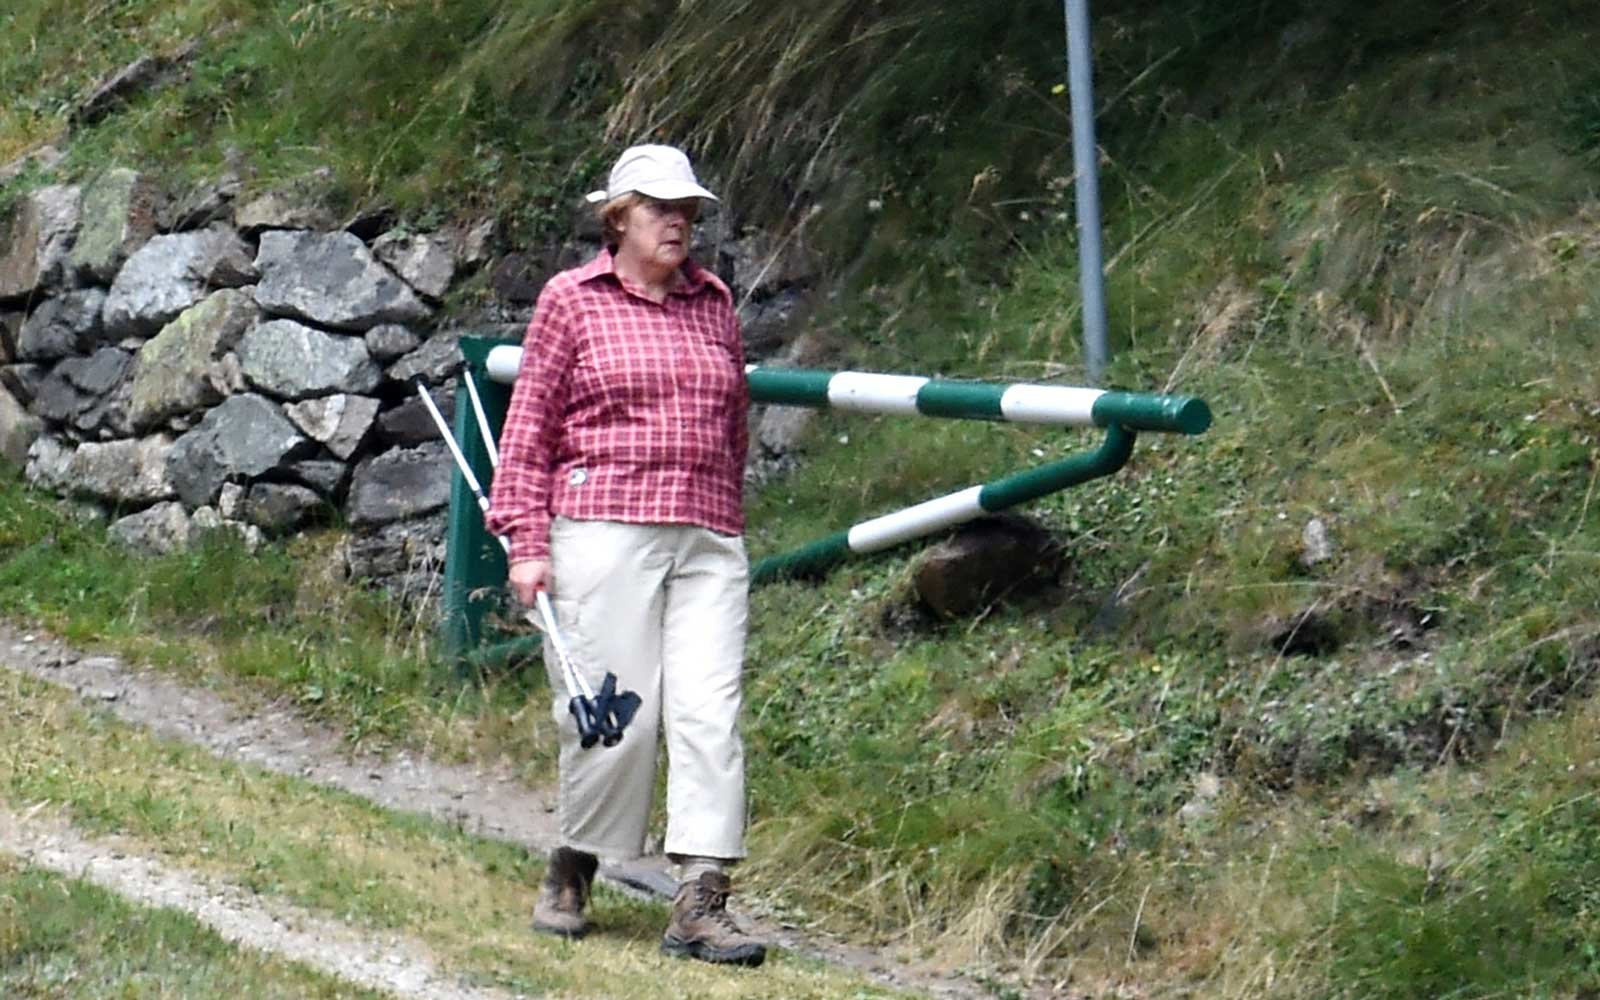 Angela Merkel Has Been Wearing The Same Vacation Outfit